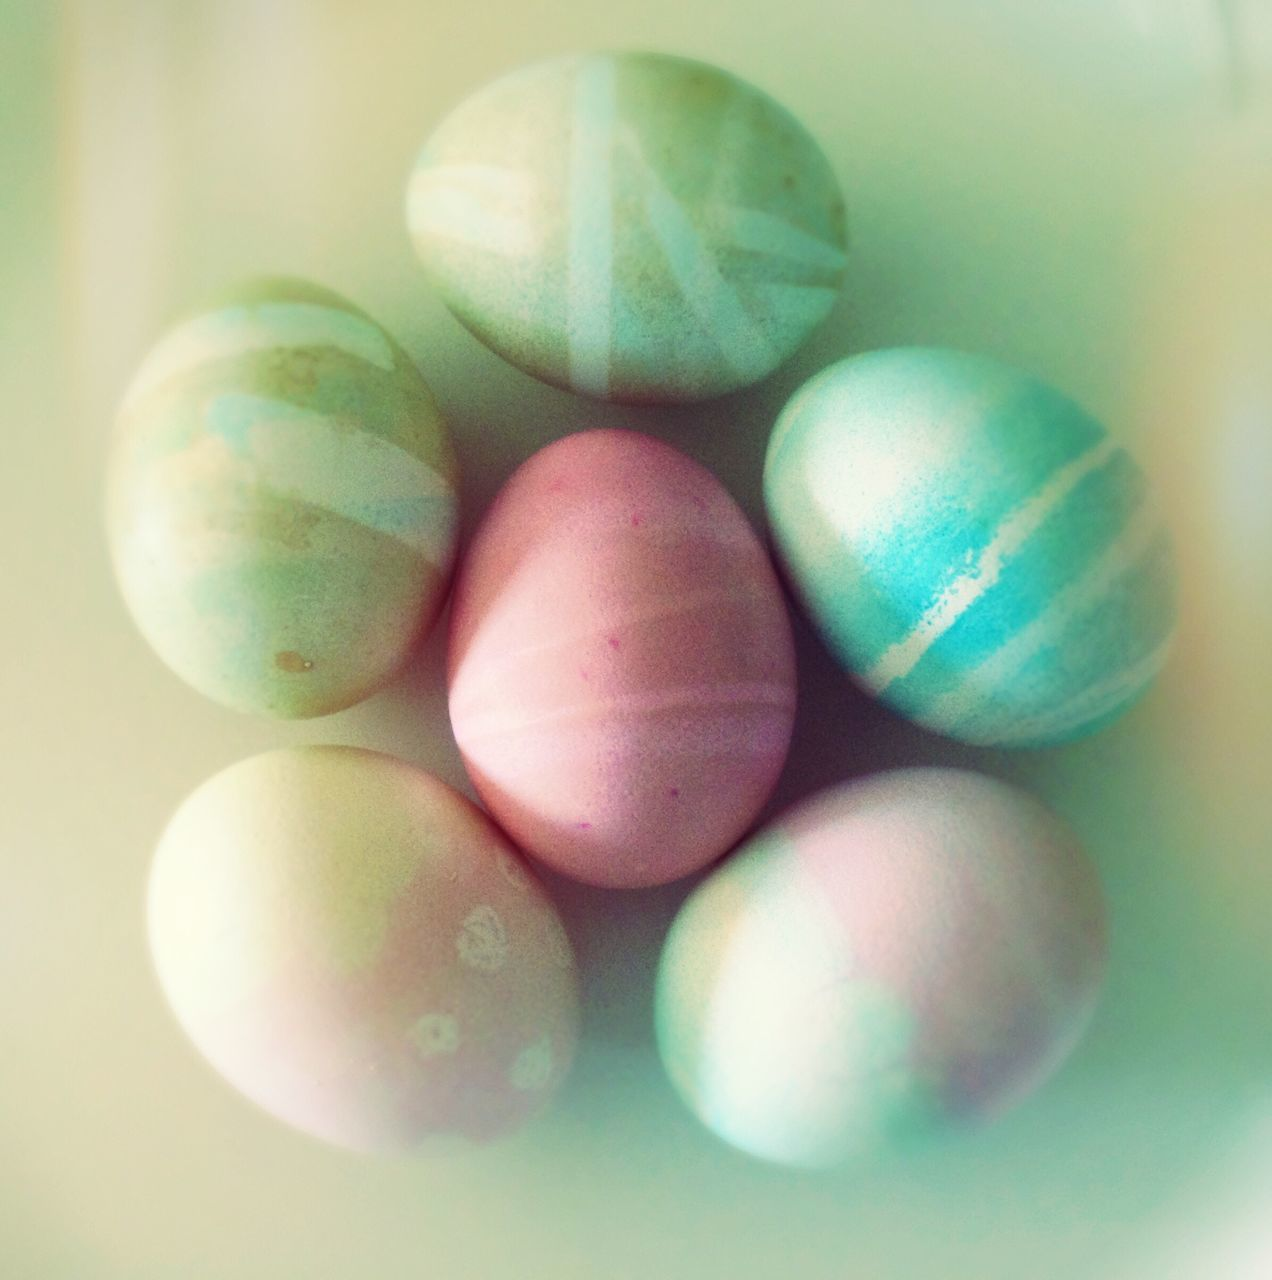 easter, multi colored, easter egg, egg, studio shot, indoors, no people, close-up, pastel colored, food, white background, day